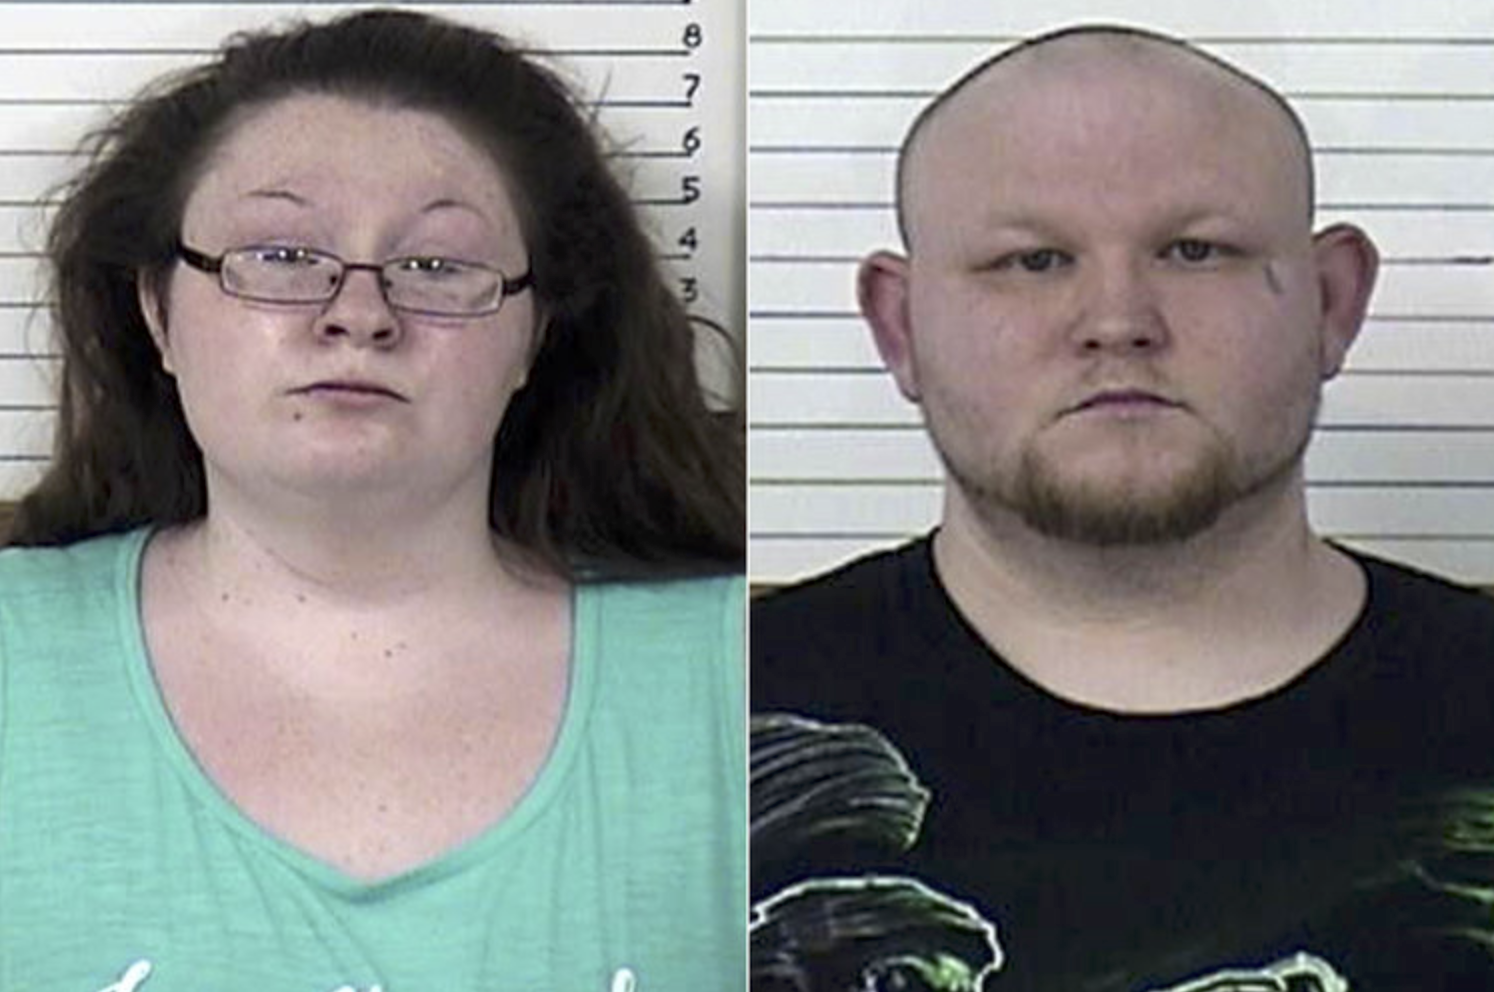 Steven Douglas Crook Jr., Kendra Hoover, Bloomfield